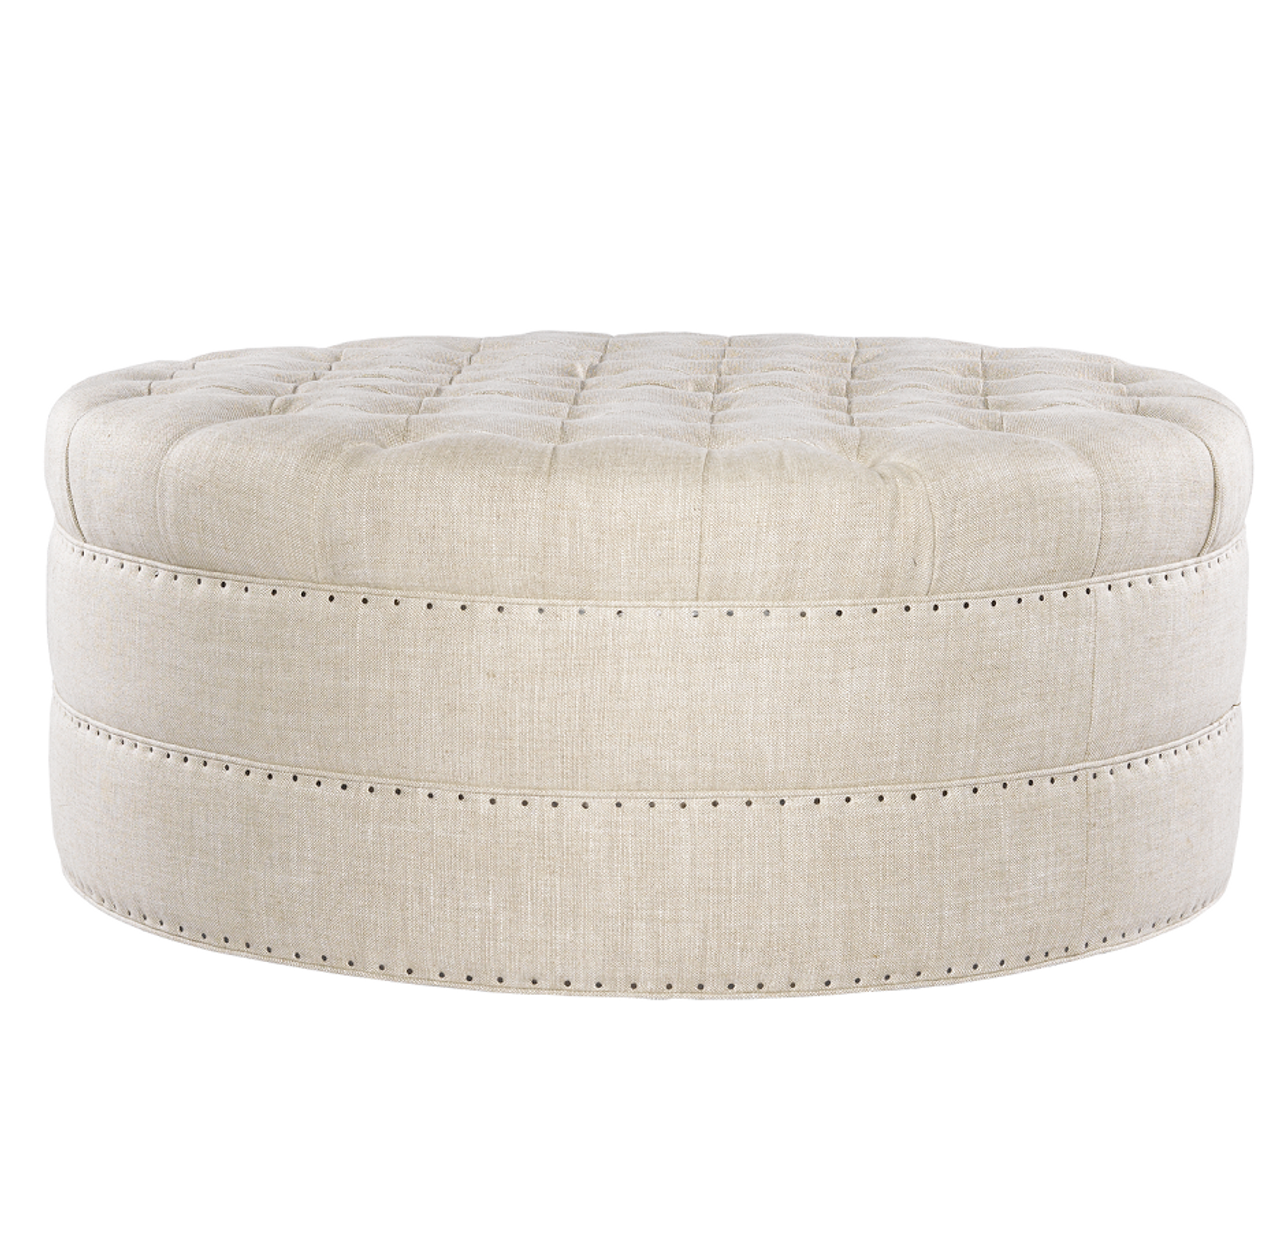 grand linen upholstered round tufted ottoman 42 zin home. Black Bedroom Furniture Sets. Home Design Ideas